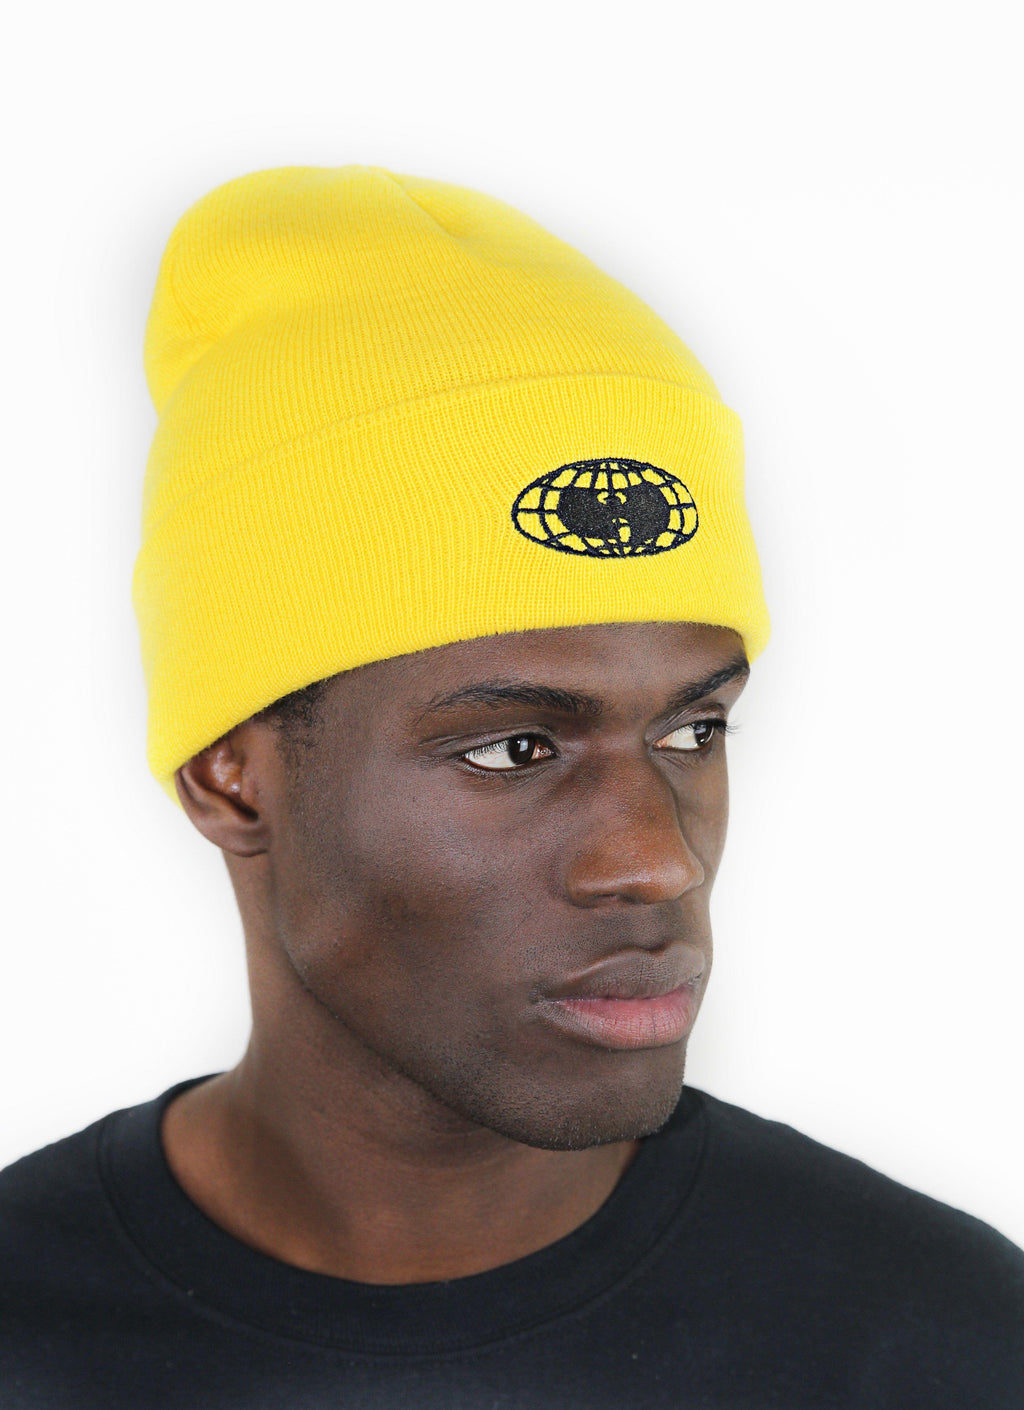 GLOBE LOGO BEANIE - YELLOW - Wu Wear